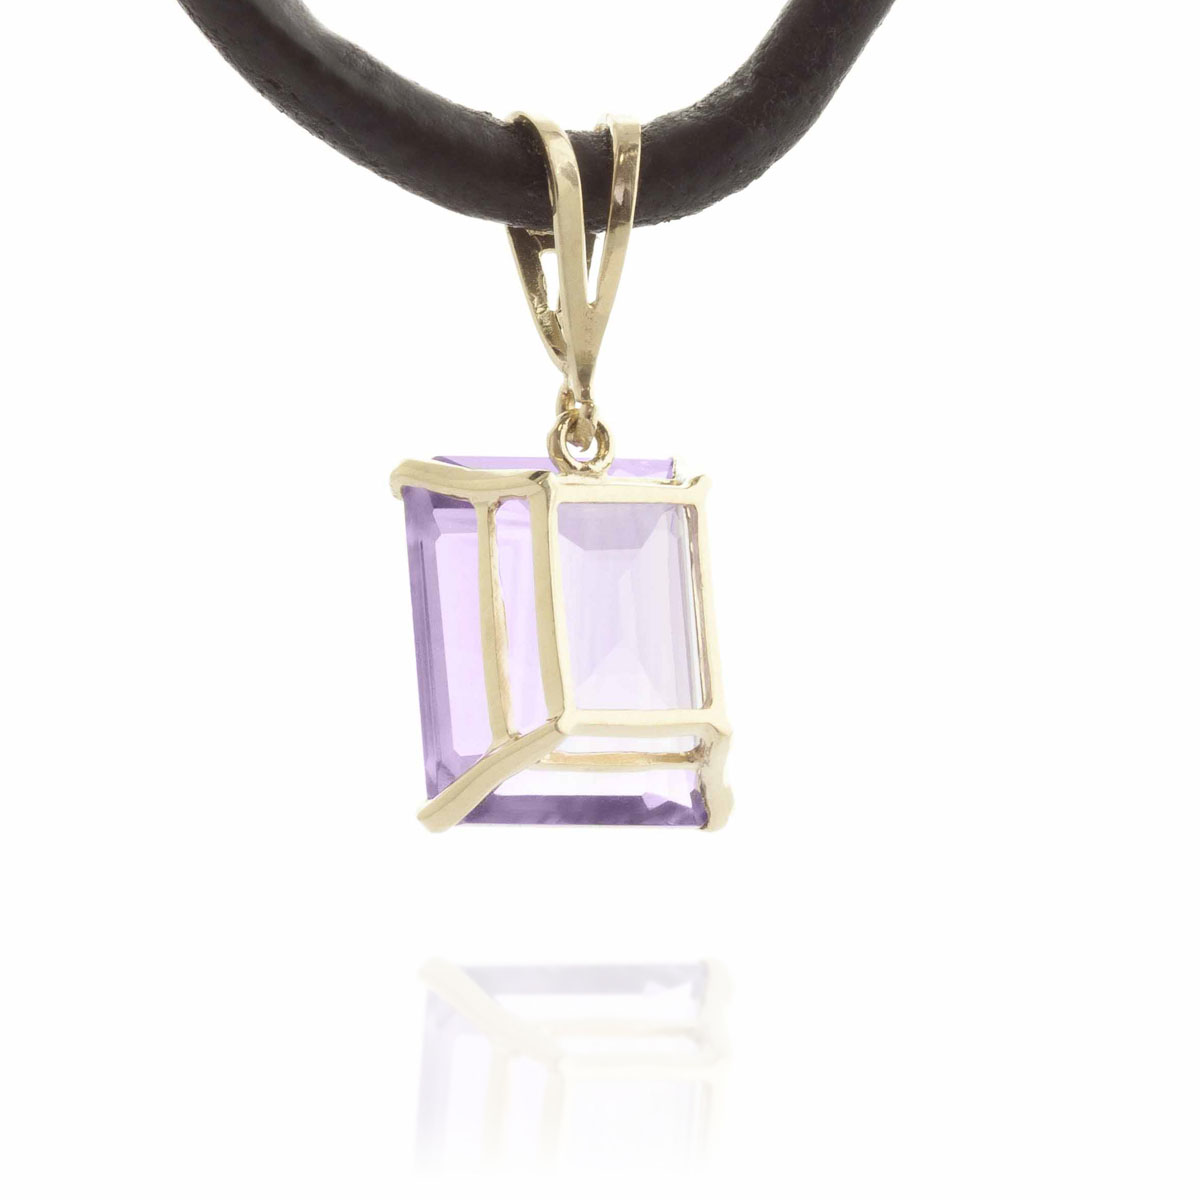 Amethyst Leather Pendant Necklace 6.51 ctw in 9ct Gold